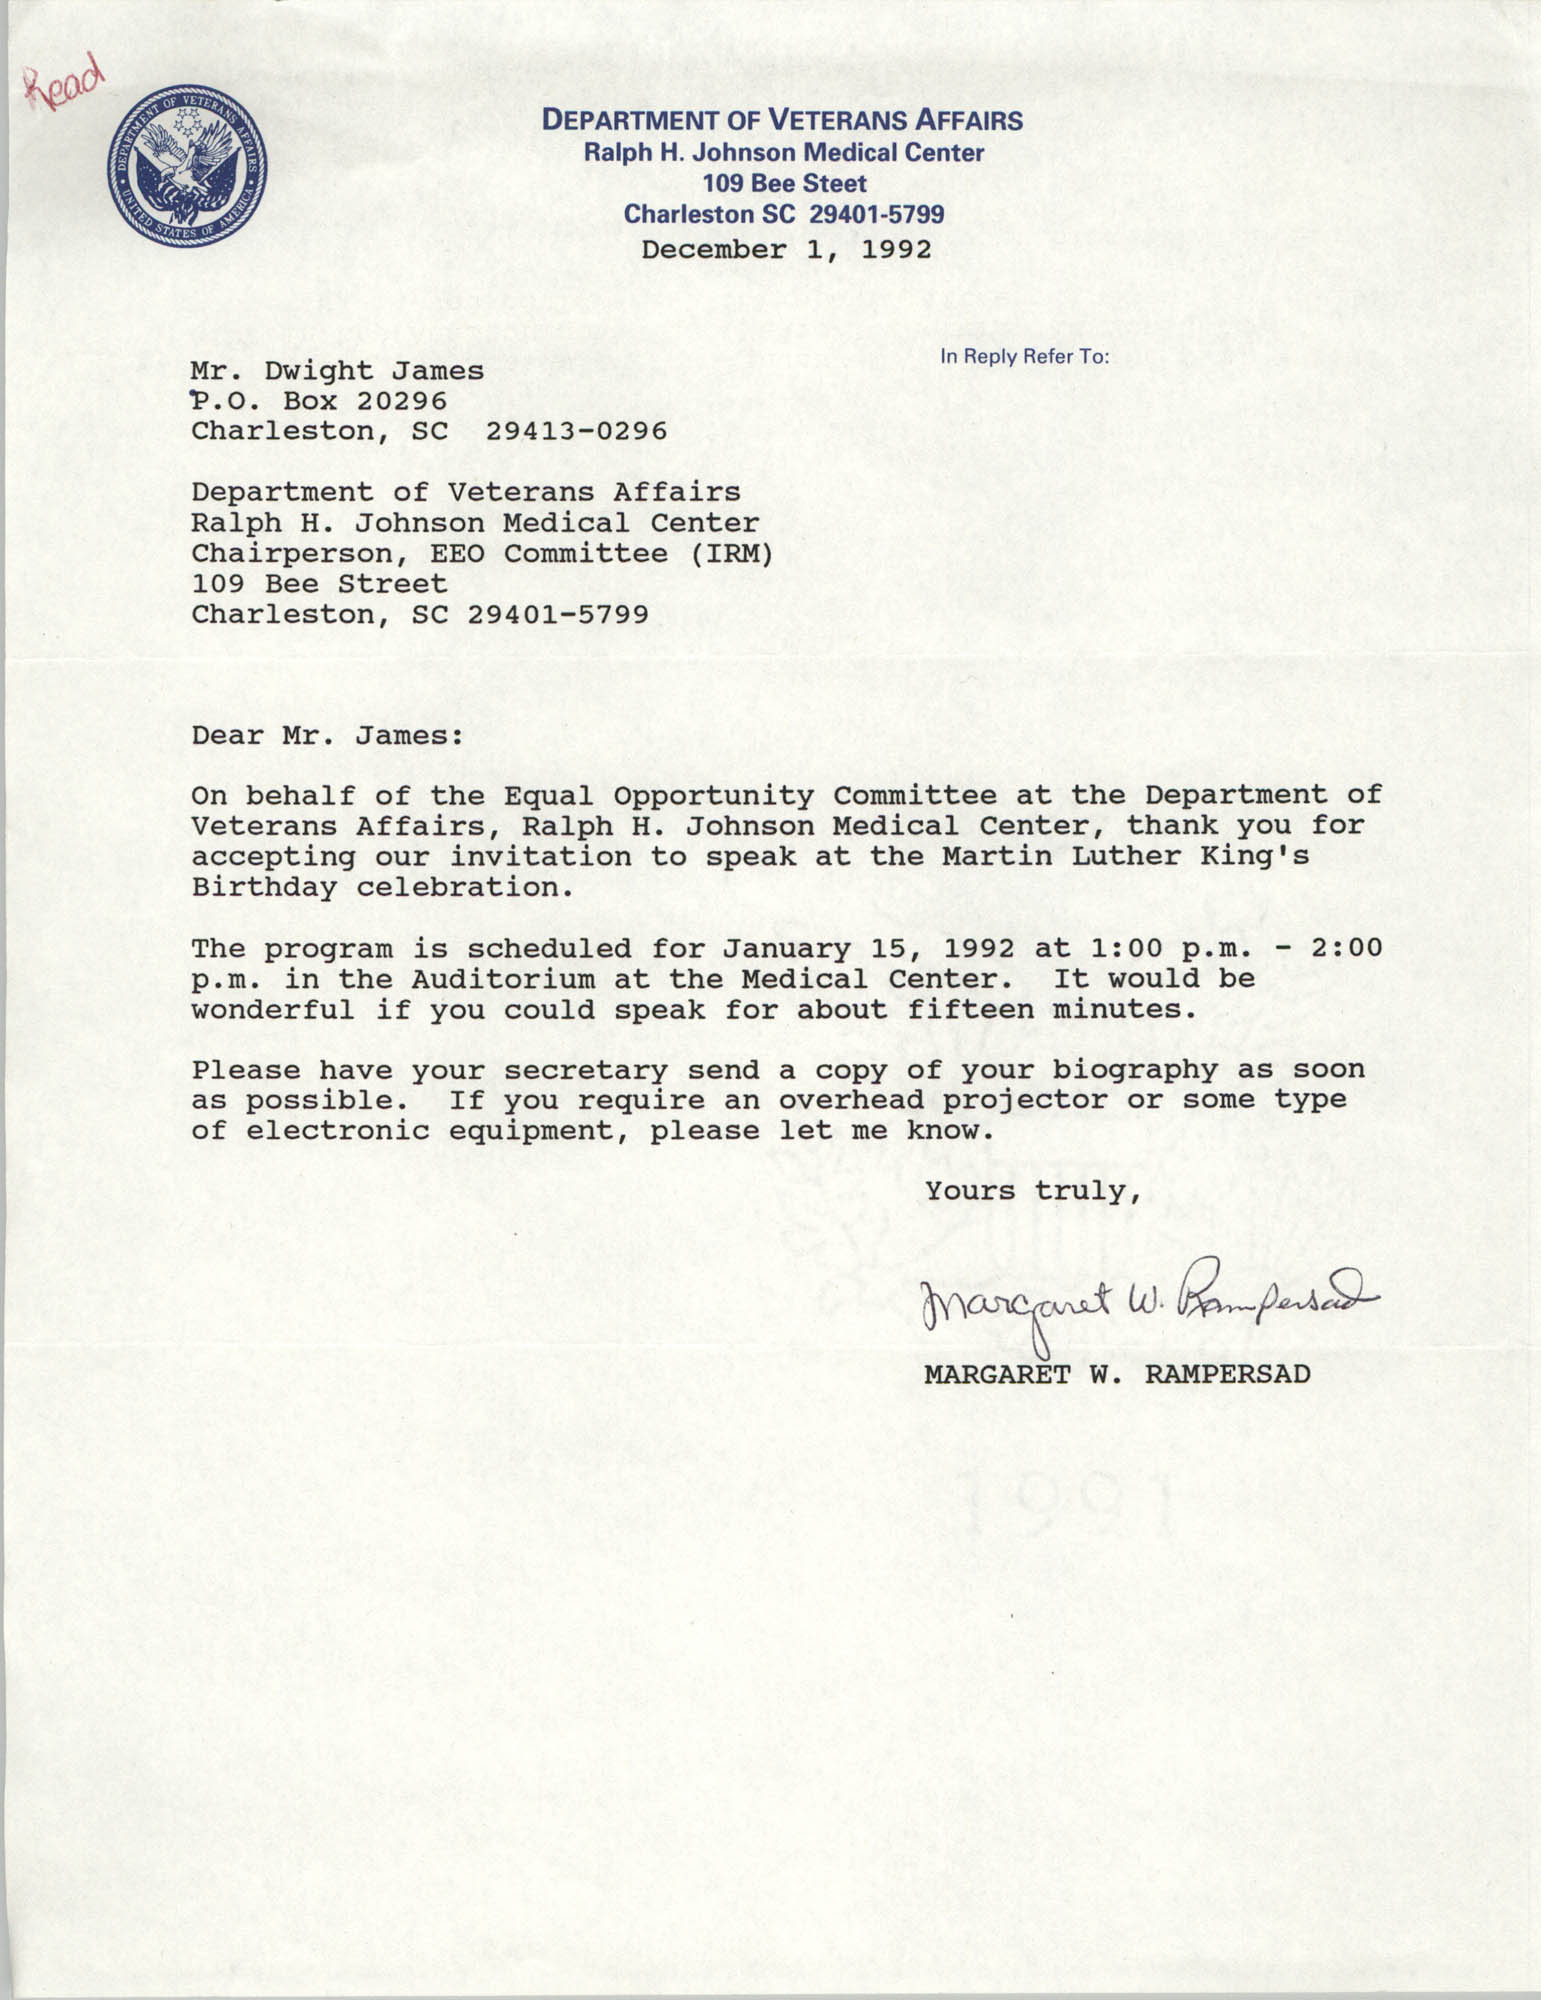 Letter from Margaret W. Rampersad to Dwight James, December 1, 1992